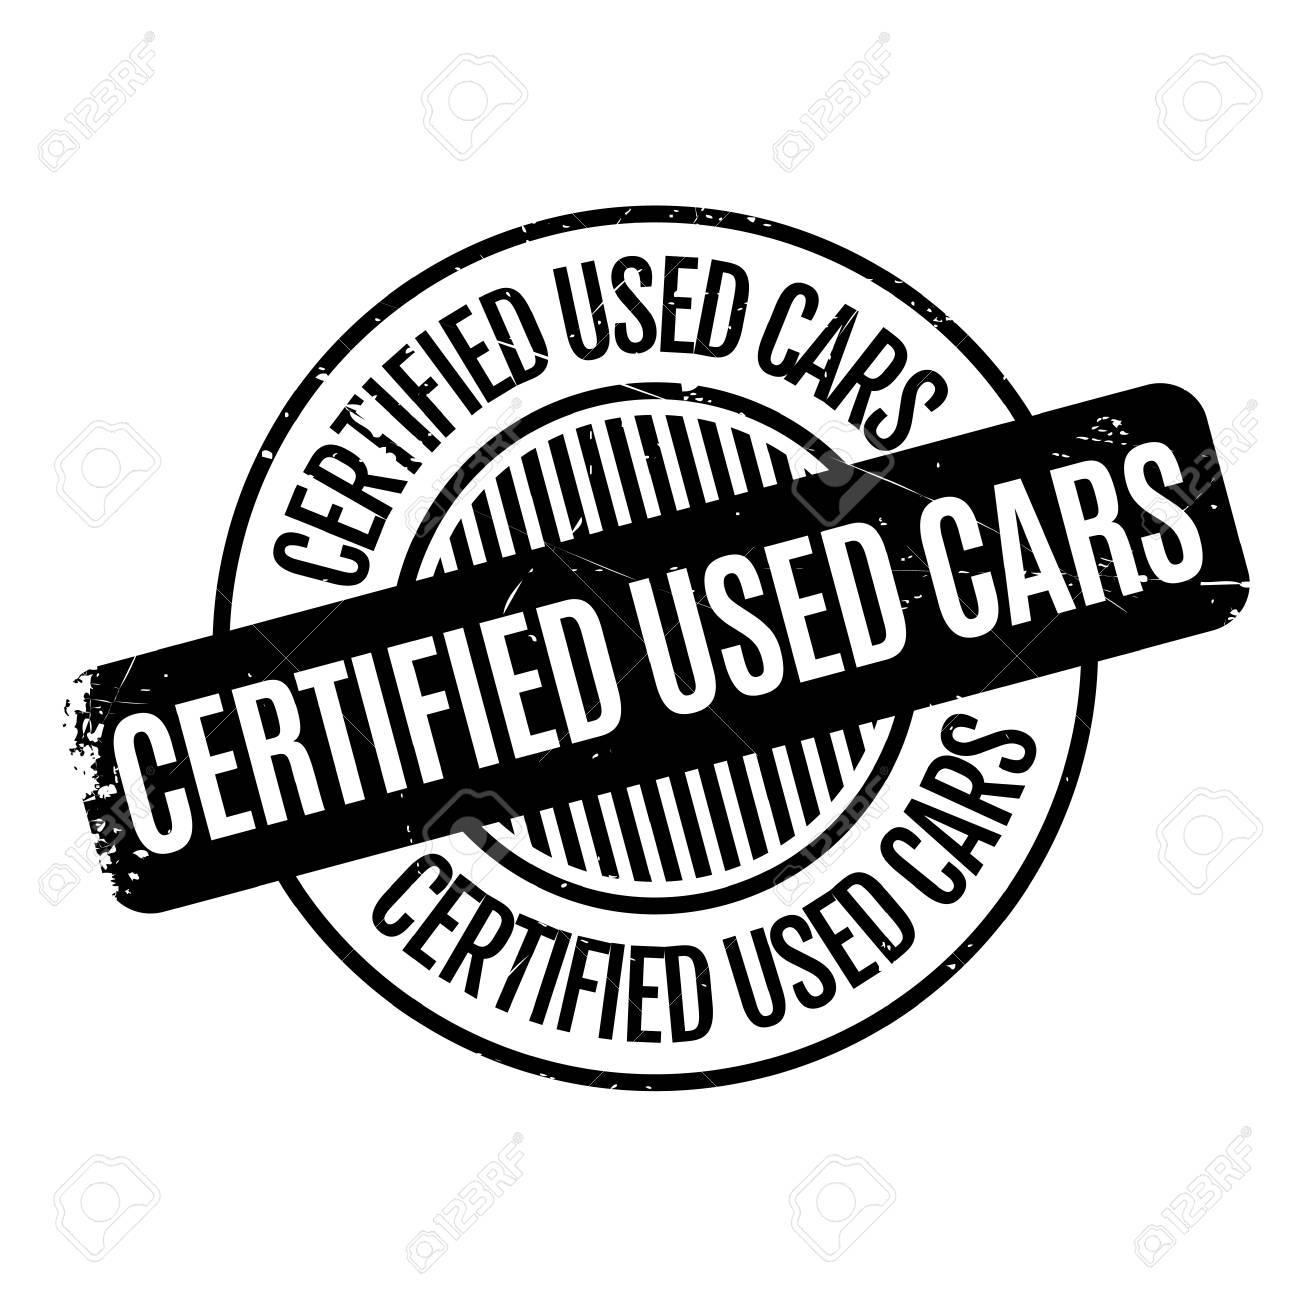 Certified Used Cars >> Certified Used Cars Rubber Stamp Grunge Design With Dust Scratches